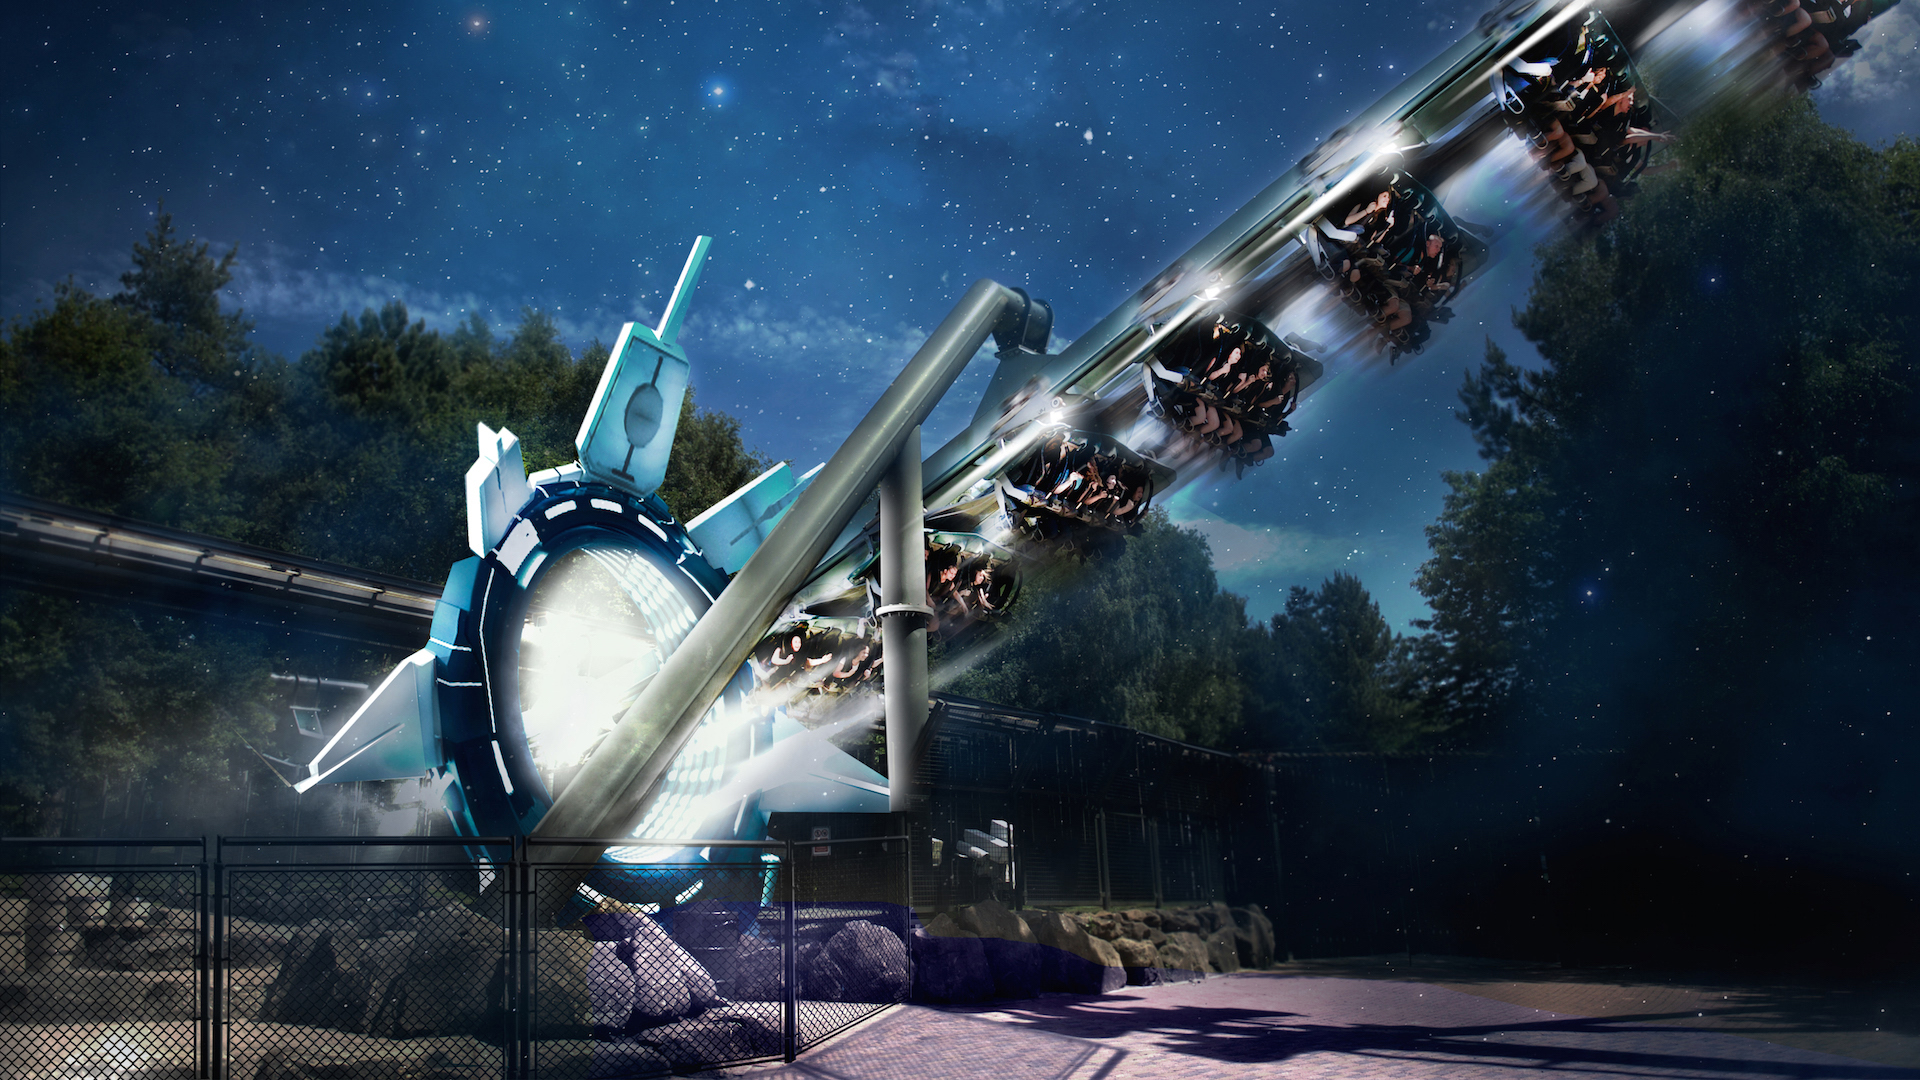 Http www alton towers co uk pages theme park - Galactica To Launch Into Alton Towers Resort For April 2016